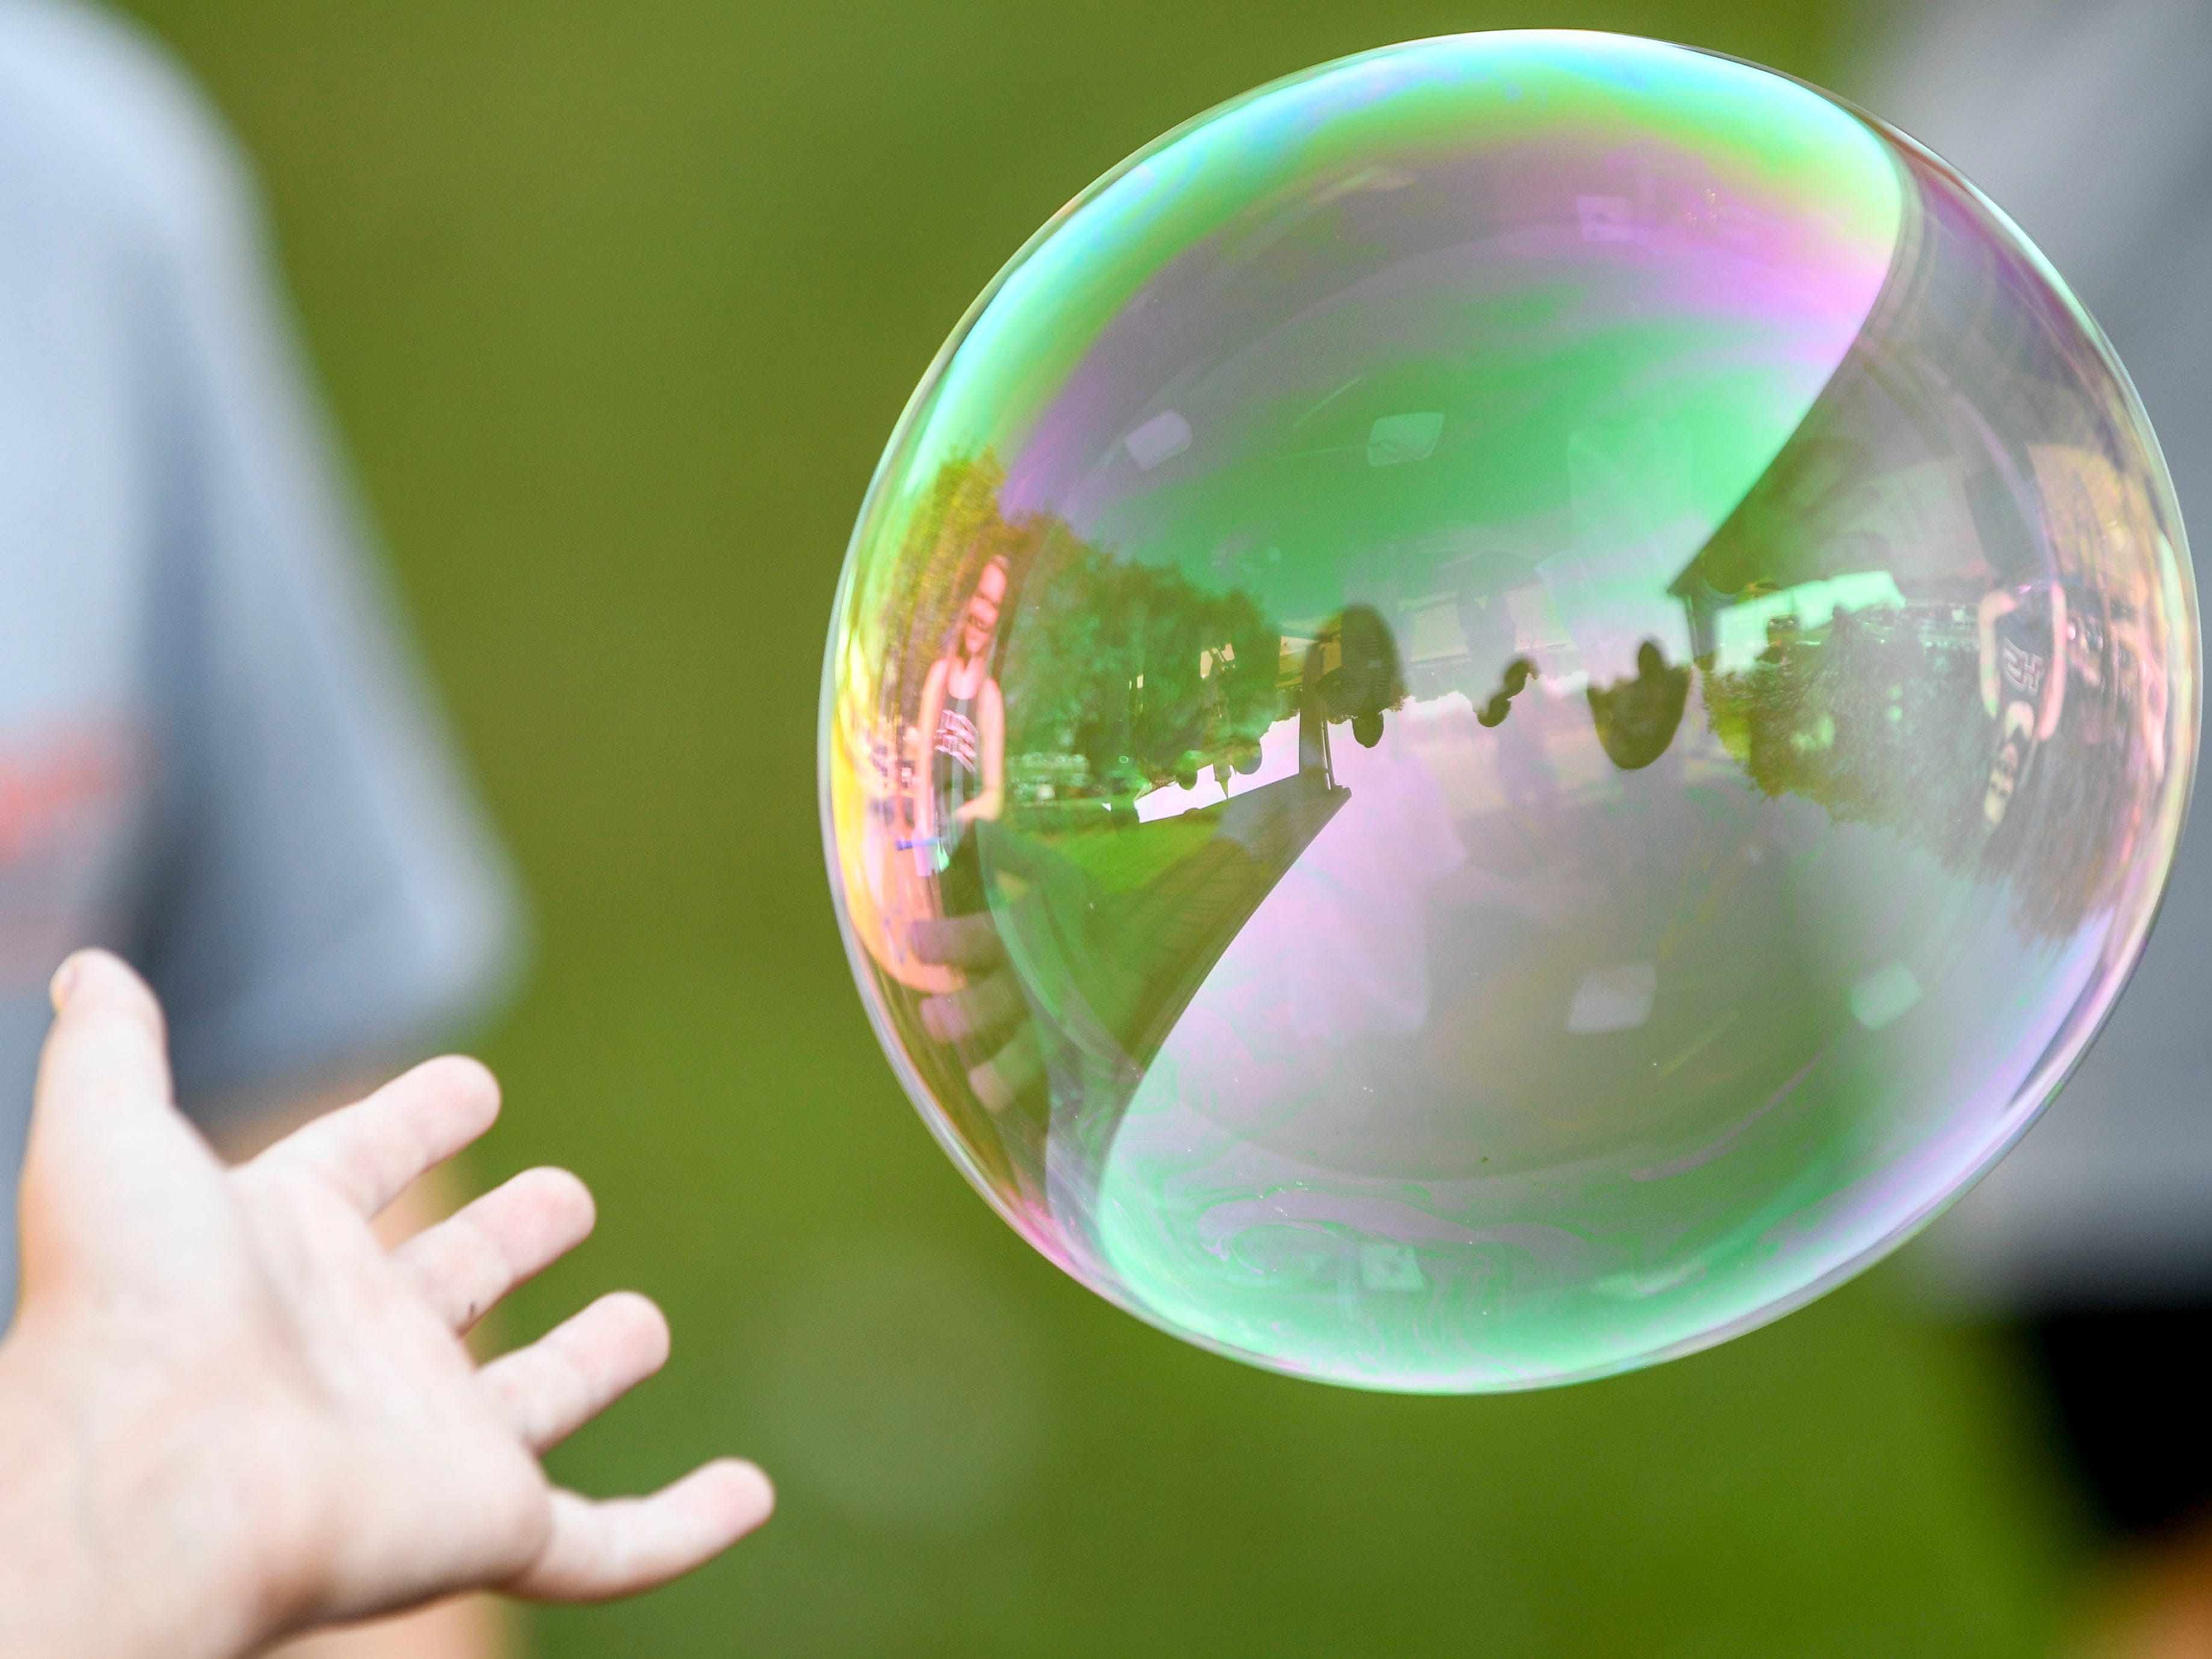 A young girl reaches to pop a bubble at the Day of Champions celebration held at Jackson Fairgrounds Park in Jackson, Tenn., on Wednesday, Sept. 19, 2018.